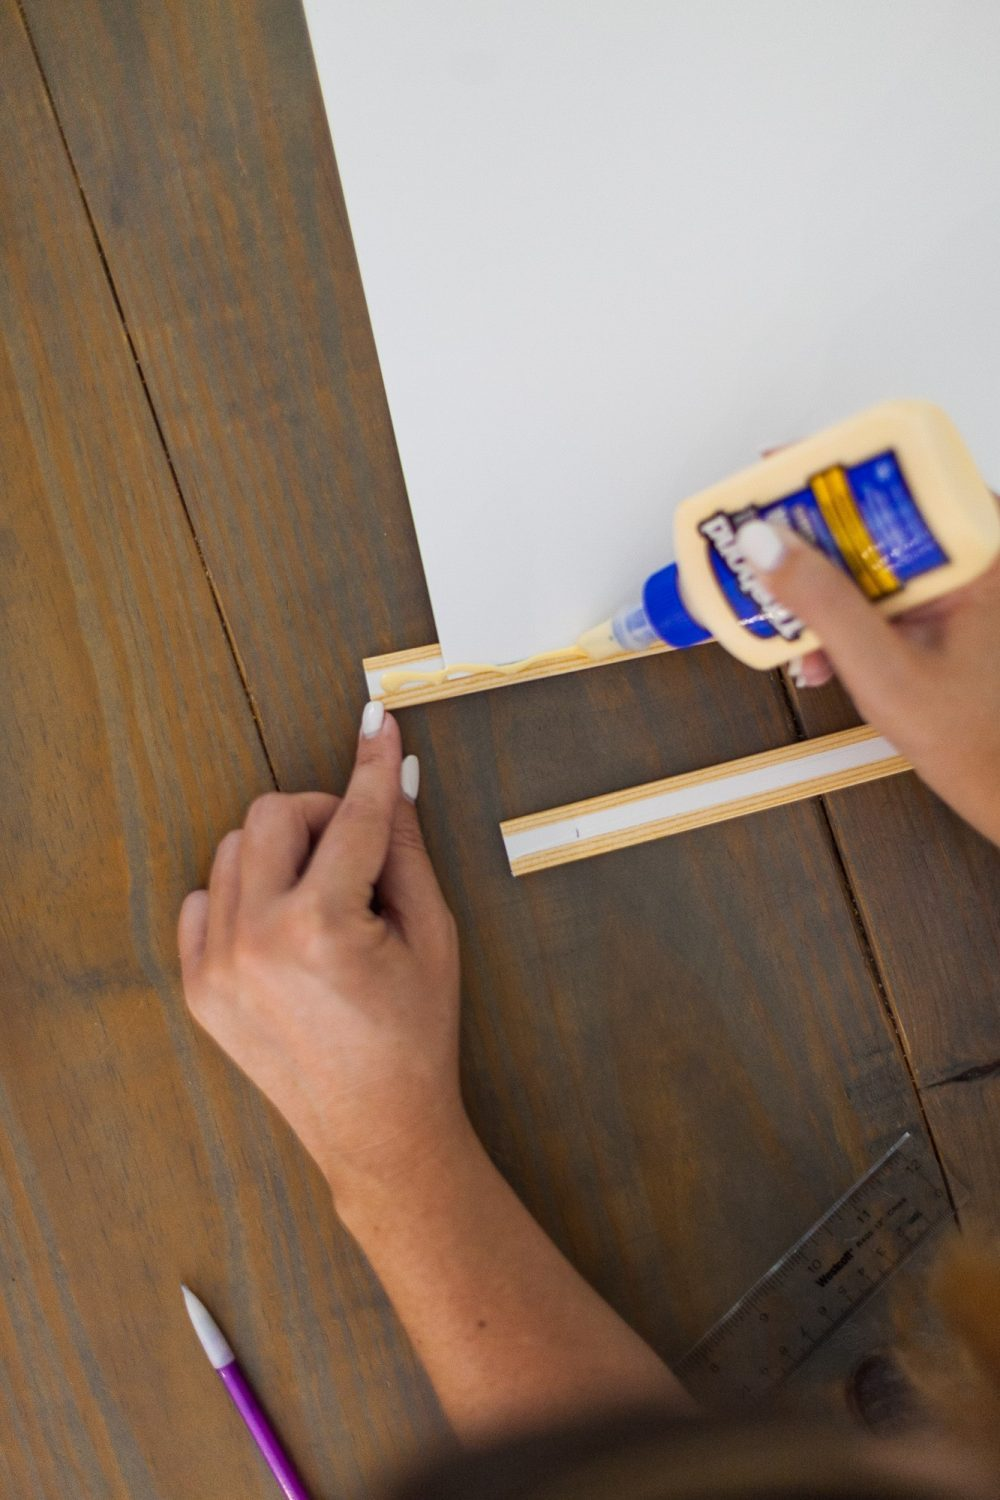 Click through for a fun, EASY DIY poster hanger tutorial. You can make your own DIY poster hanger for $3 in just a few short minutes!   DIY Poster Hanger by popular Florida DIY blog, Fresh Mommy Blog: image of a woman applying wood glue to the back of a poster board that's been attached to some wood moulding.